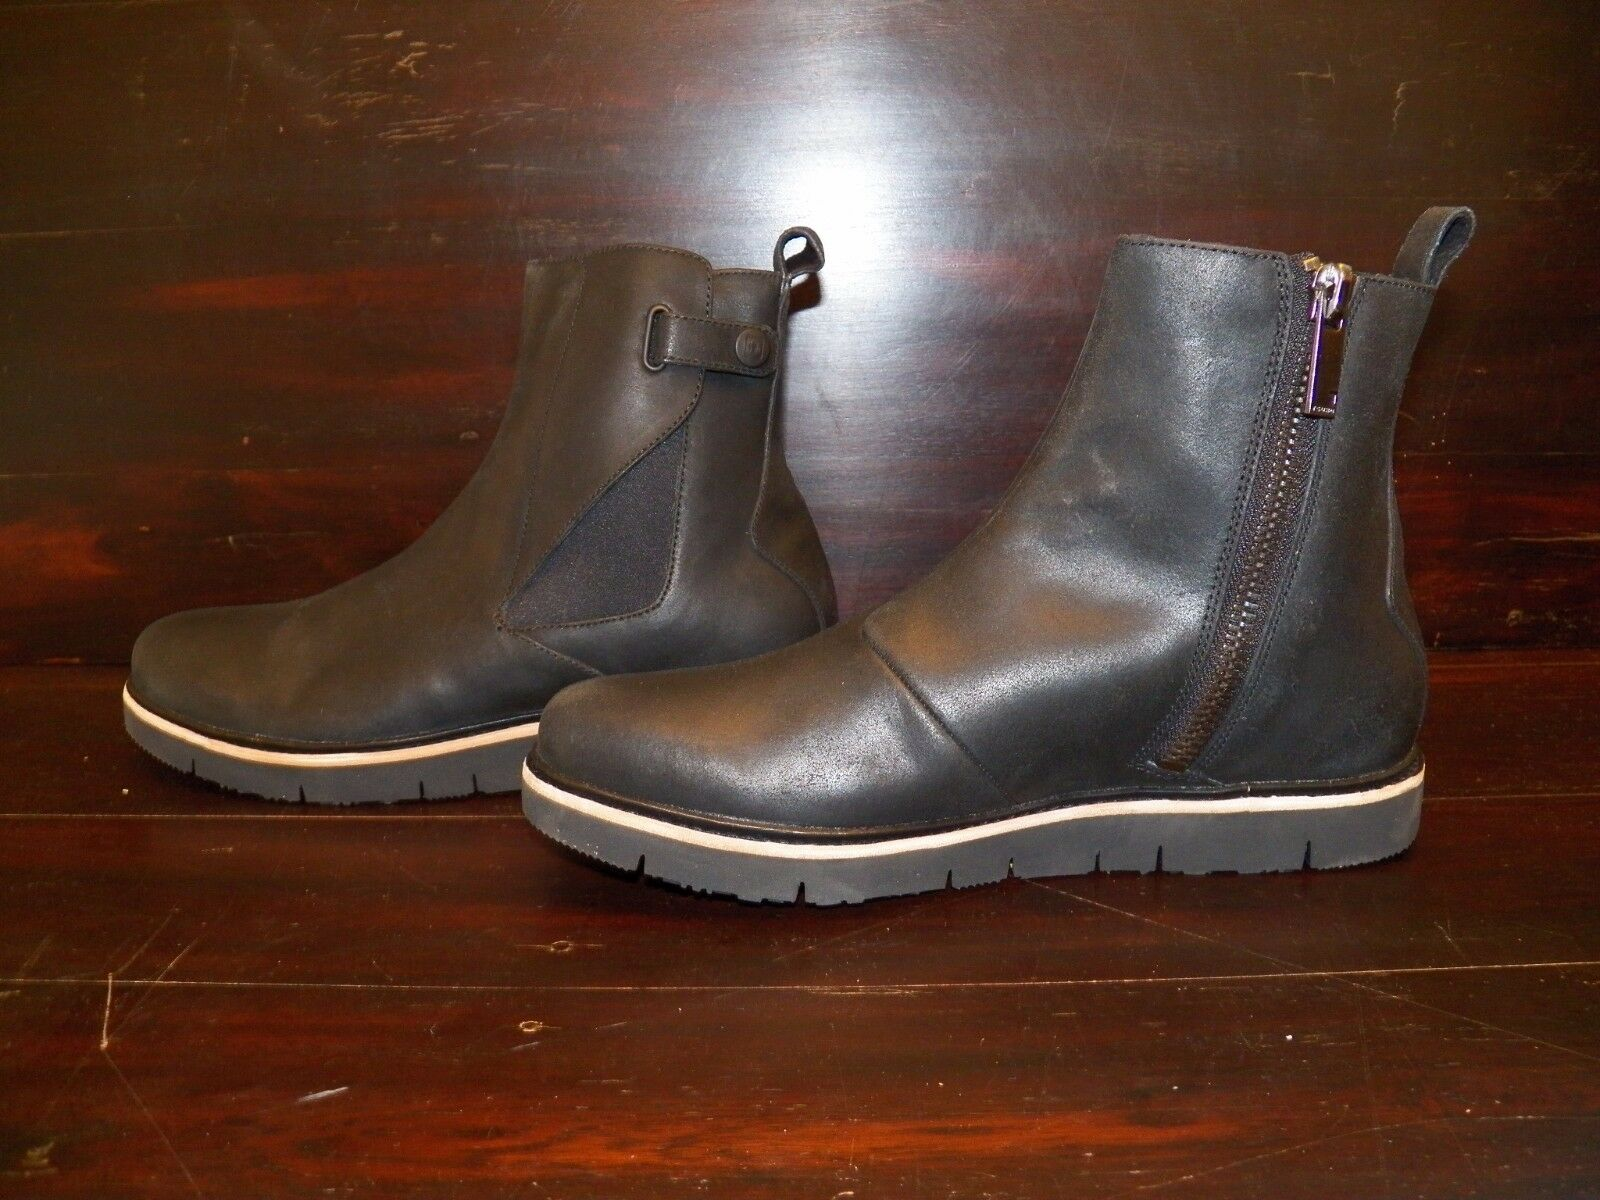 New Mens TSUBO Henson Black Leather Work Casual Fall Winter Church Ankle Boots